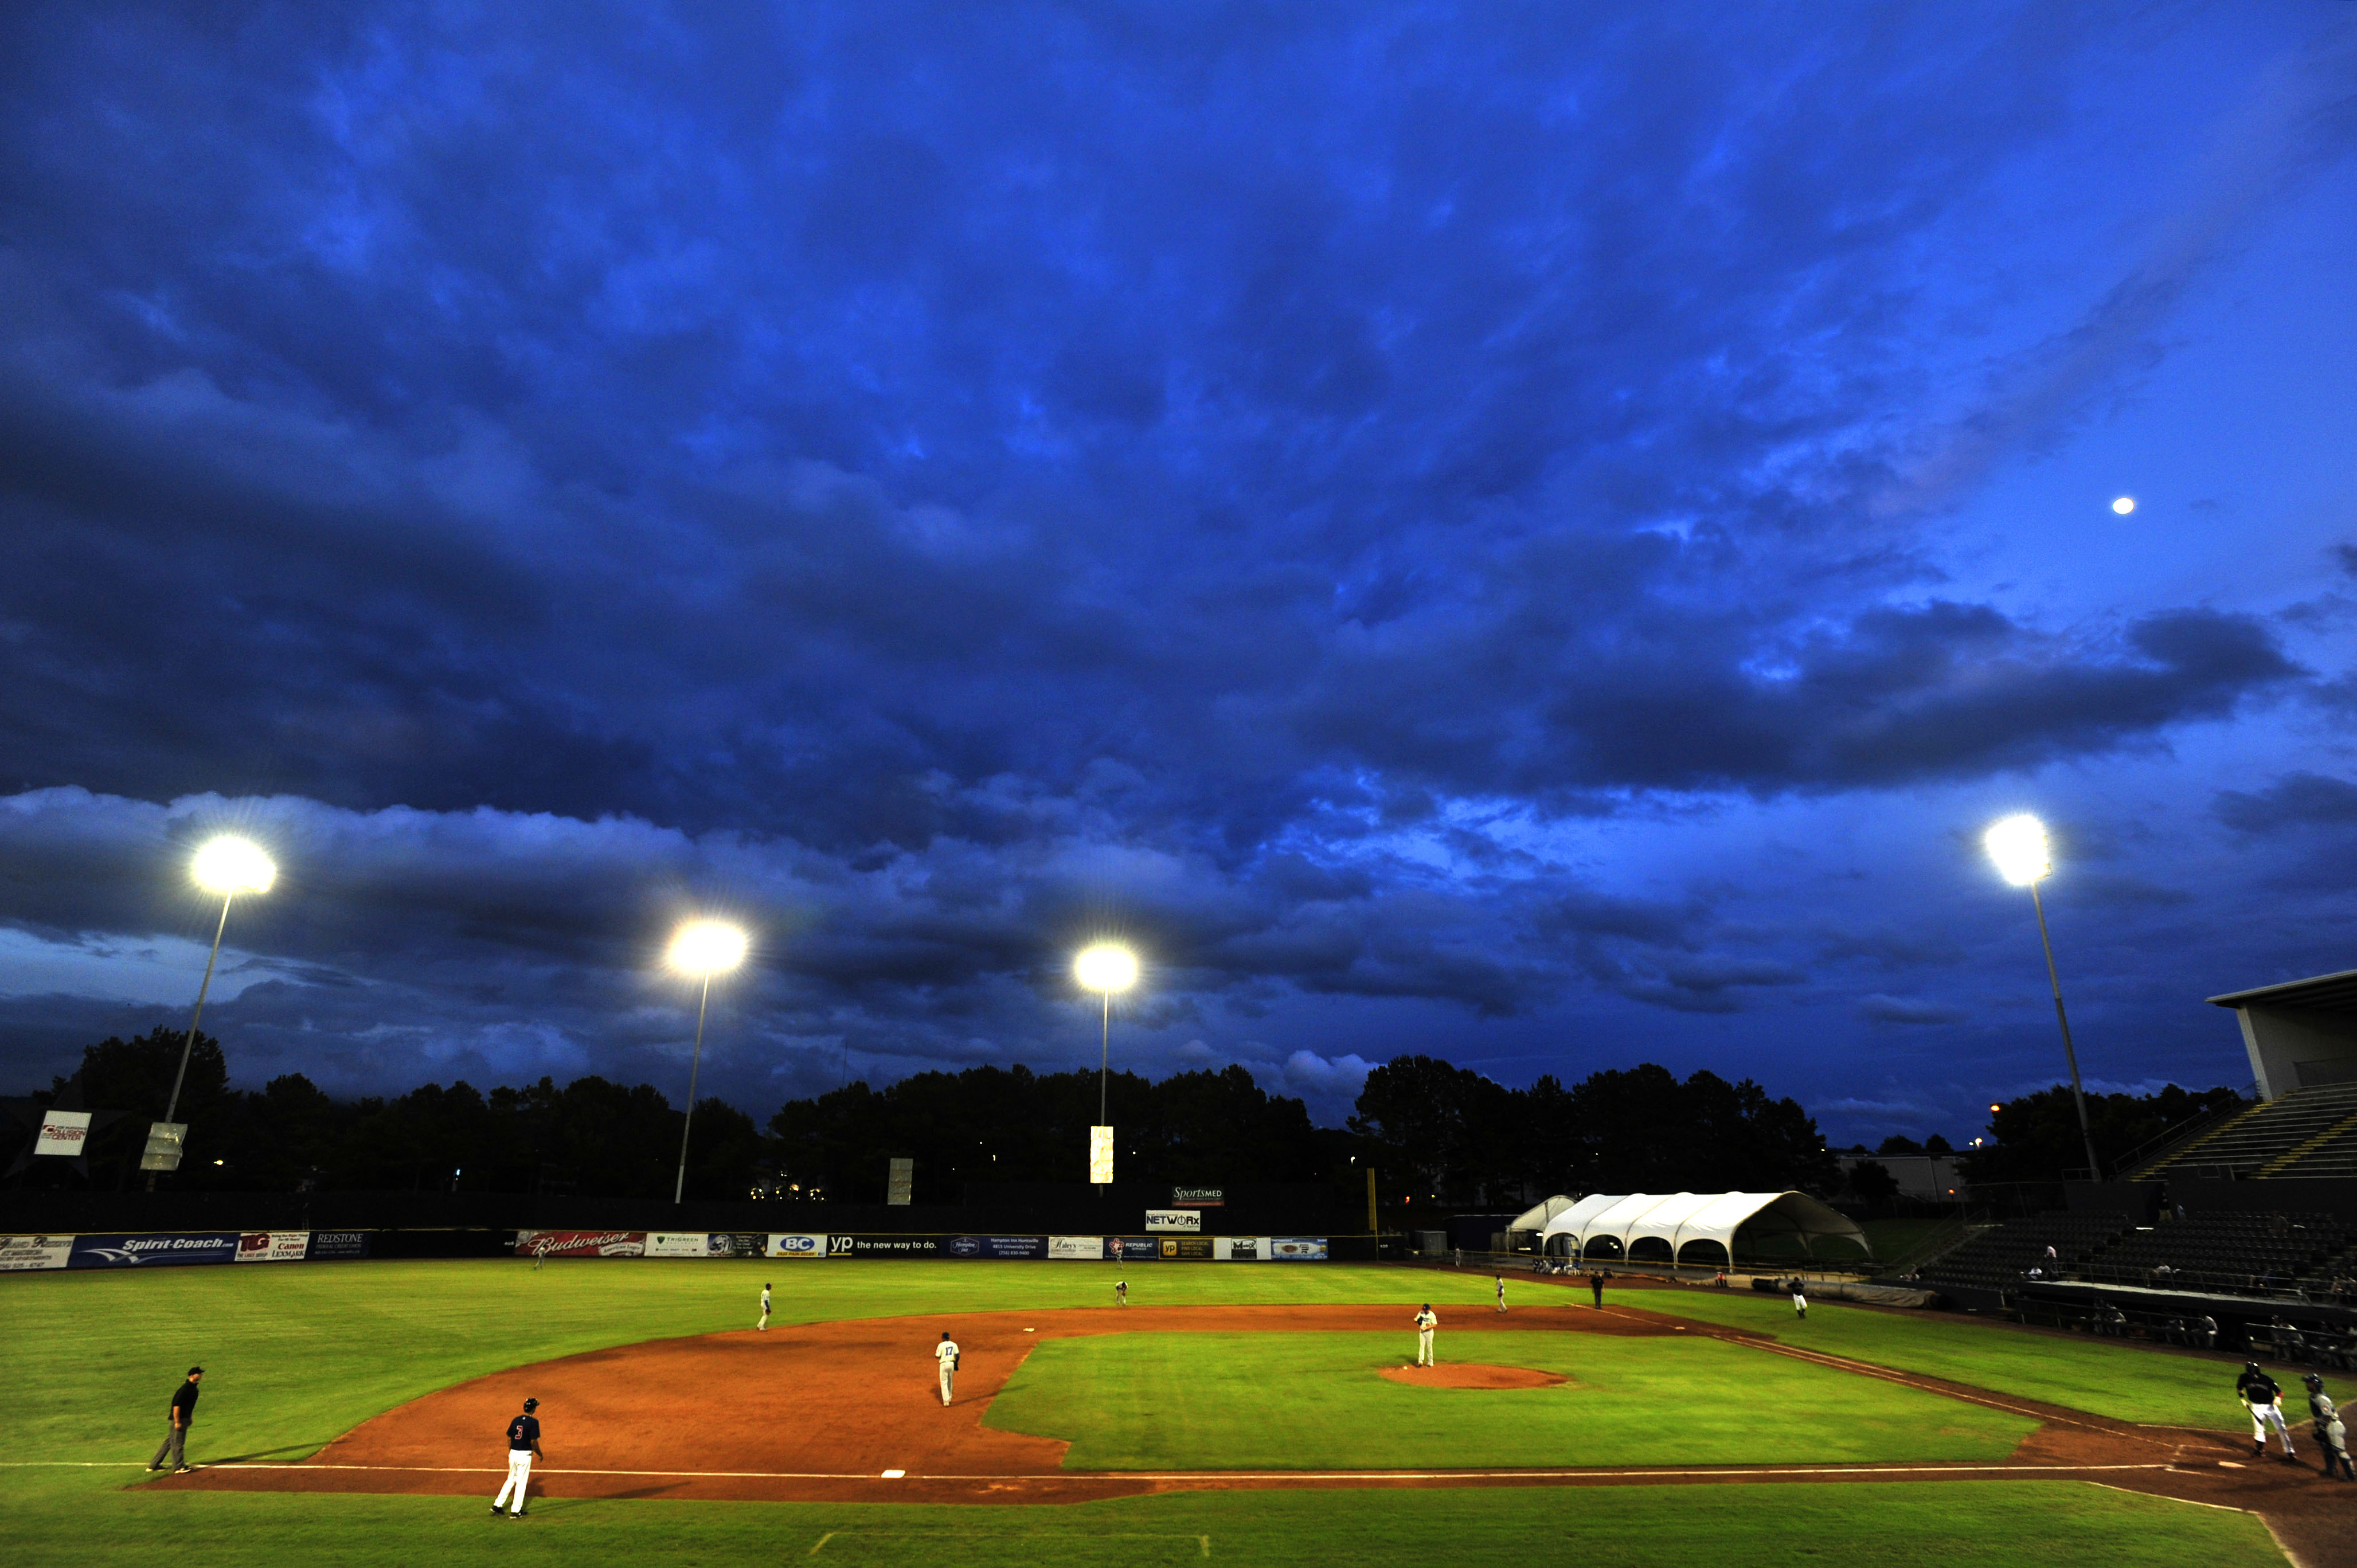 Chattanooga Lookouts play the Huntsville Stars Baseball